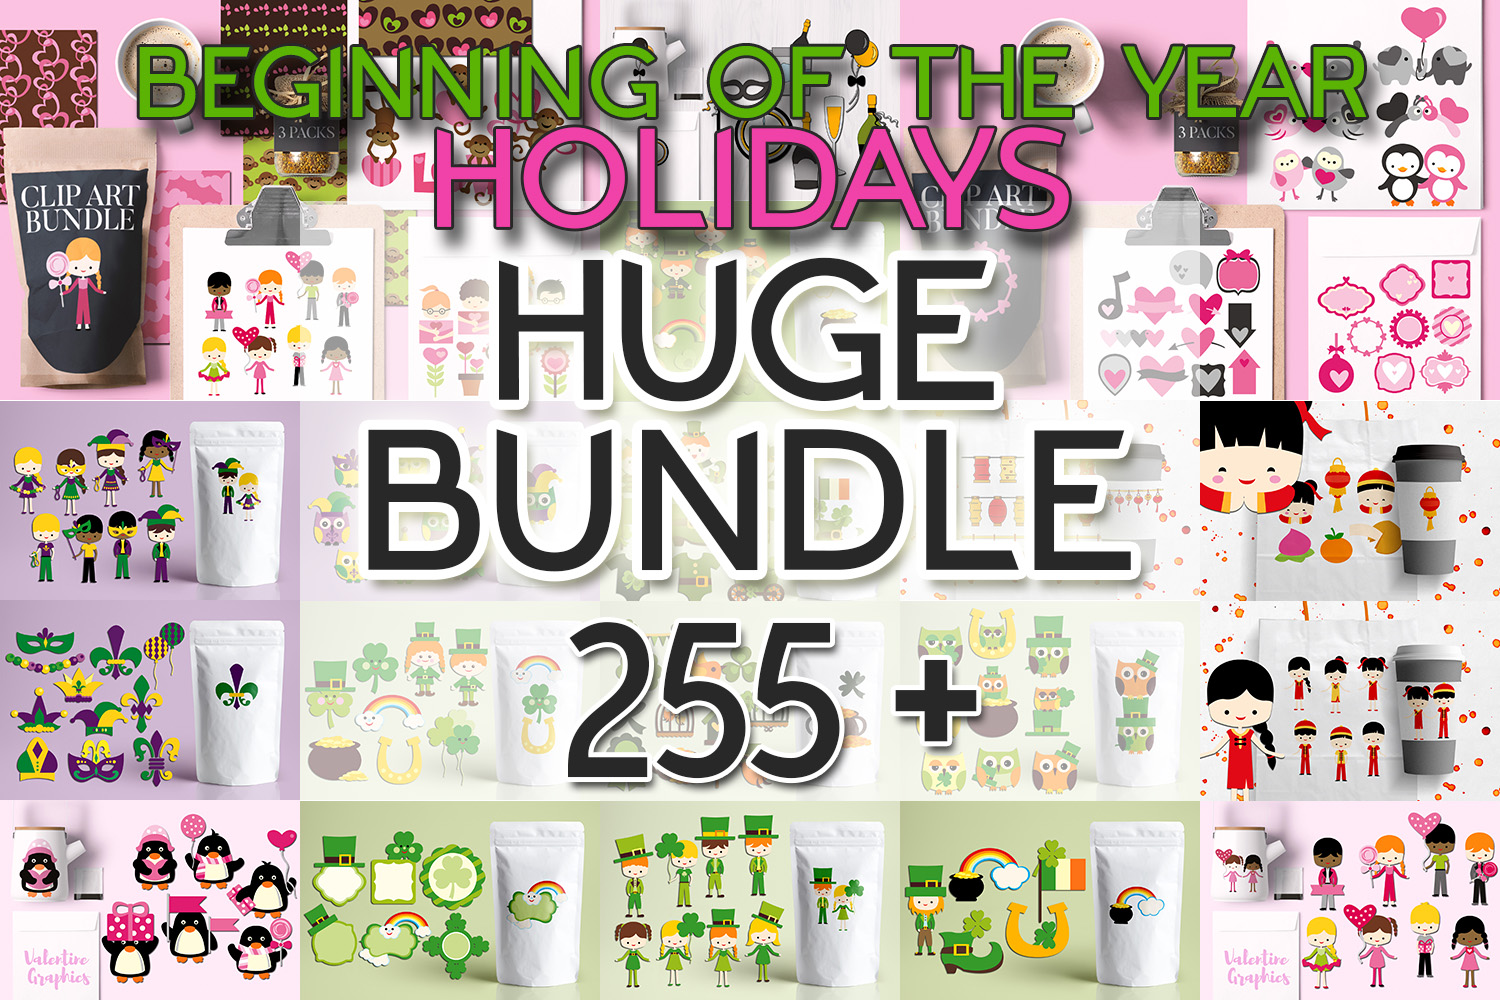 Beginning of the year holidays bundle, huge clip art example image 1